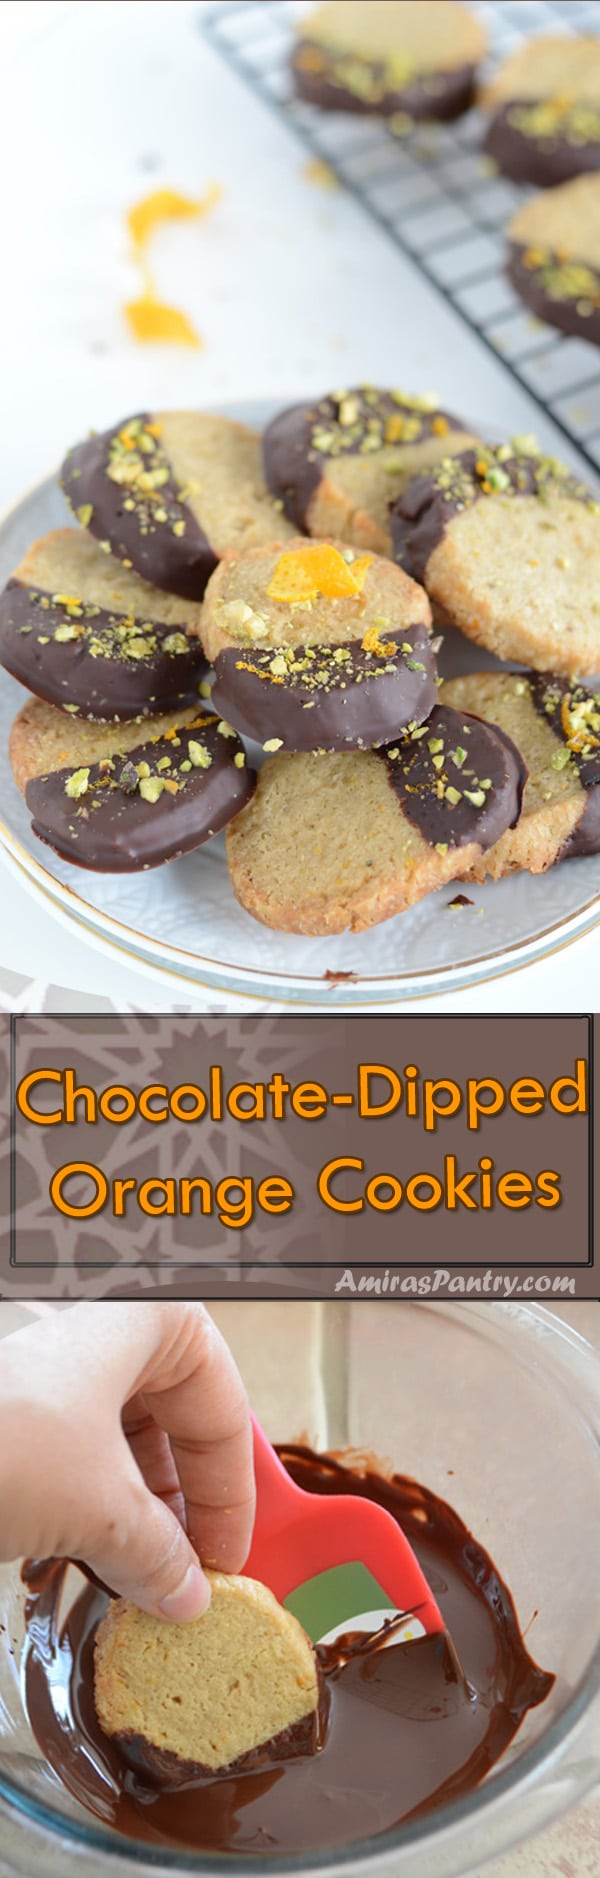 Easy orange cookies, dipped in dark chocolate and sprinkled with orange zest and pistachios. Perfect for tea time or coffee time.